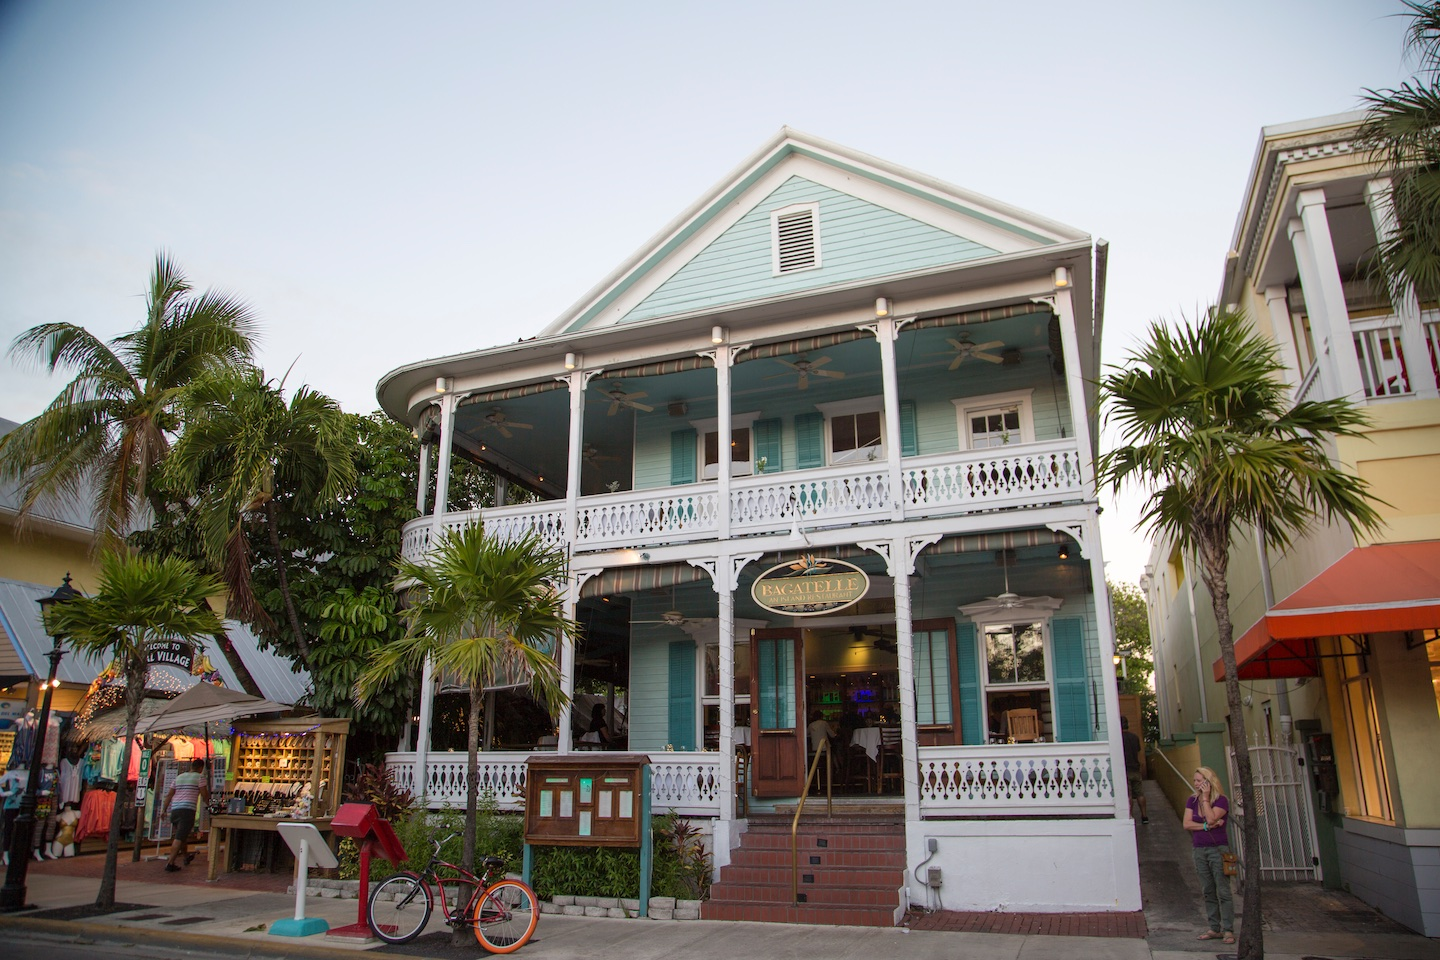 facade of Bagatelle restaurant in downtown Key West, Florida